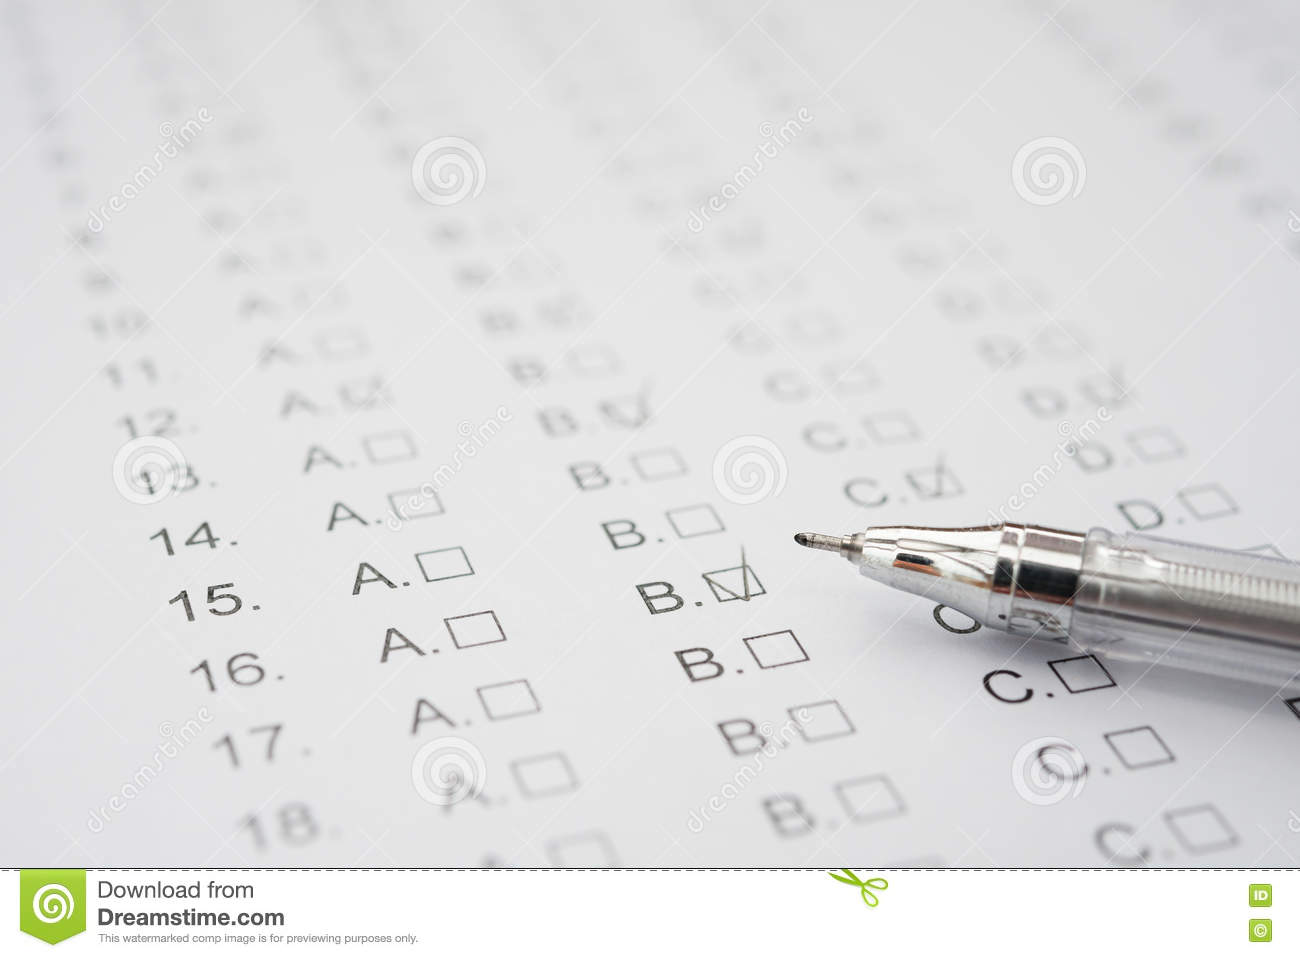 Test score sheet with answers and ballpoint